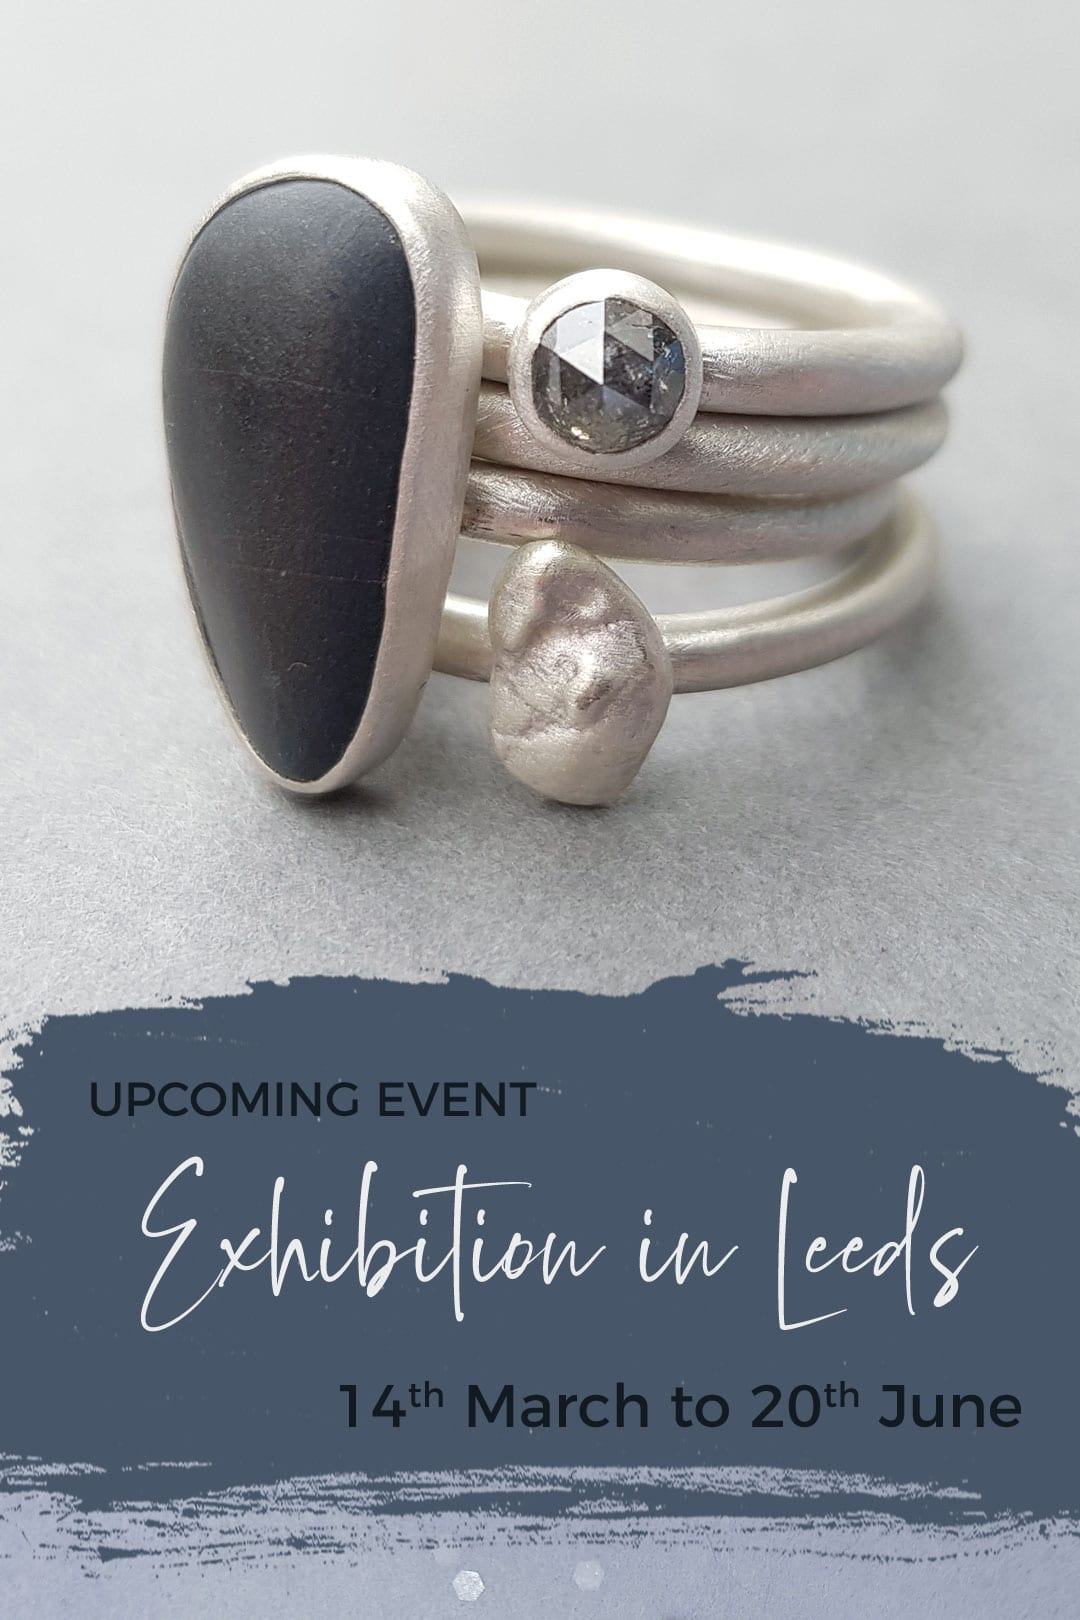 Pebble collection at Leeds jewellery exhibition